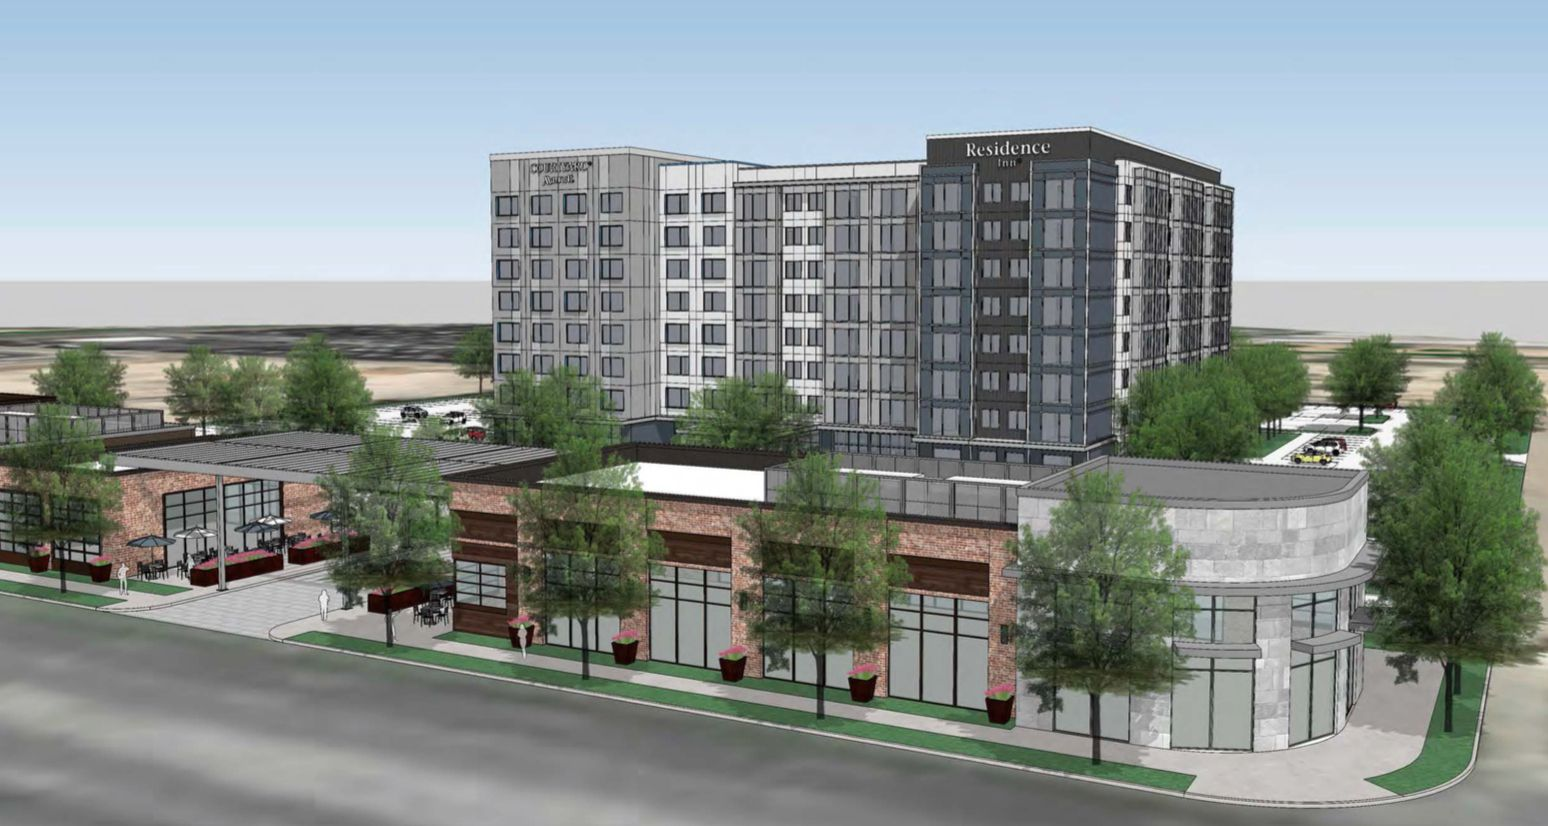 The new Courtyard and Residence Inn hotels and retail space would be built on Mockingbird Lane west of Love Field.